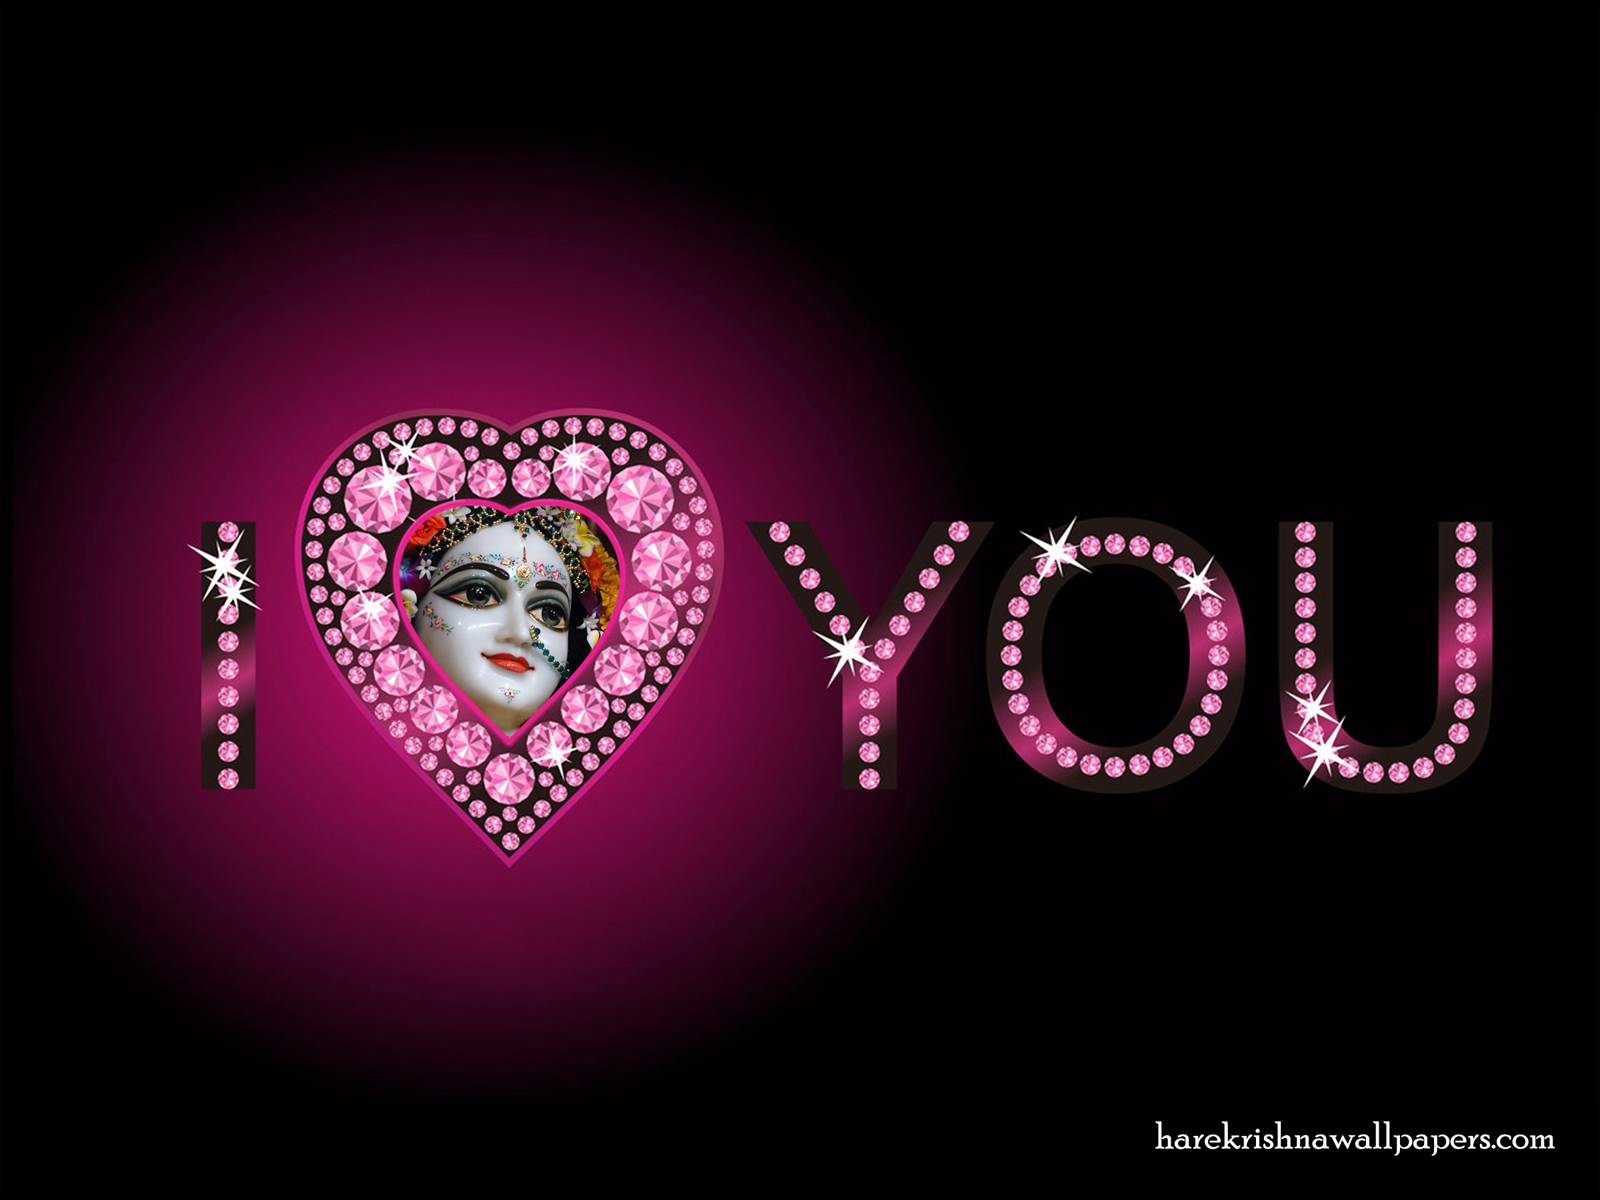 I Love You Radharani Wallpaper (013) Size1600x1200 Download